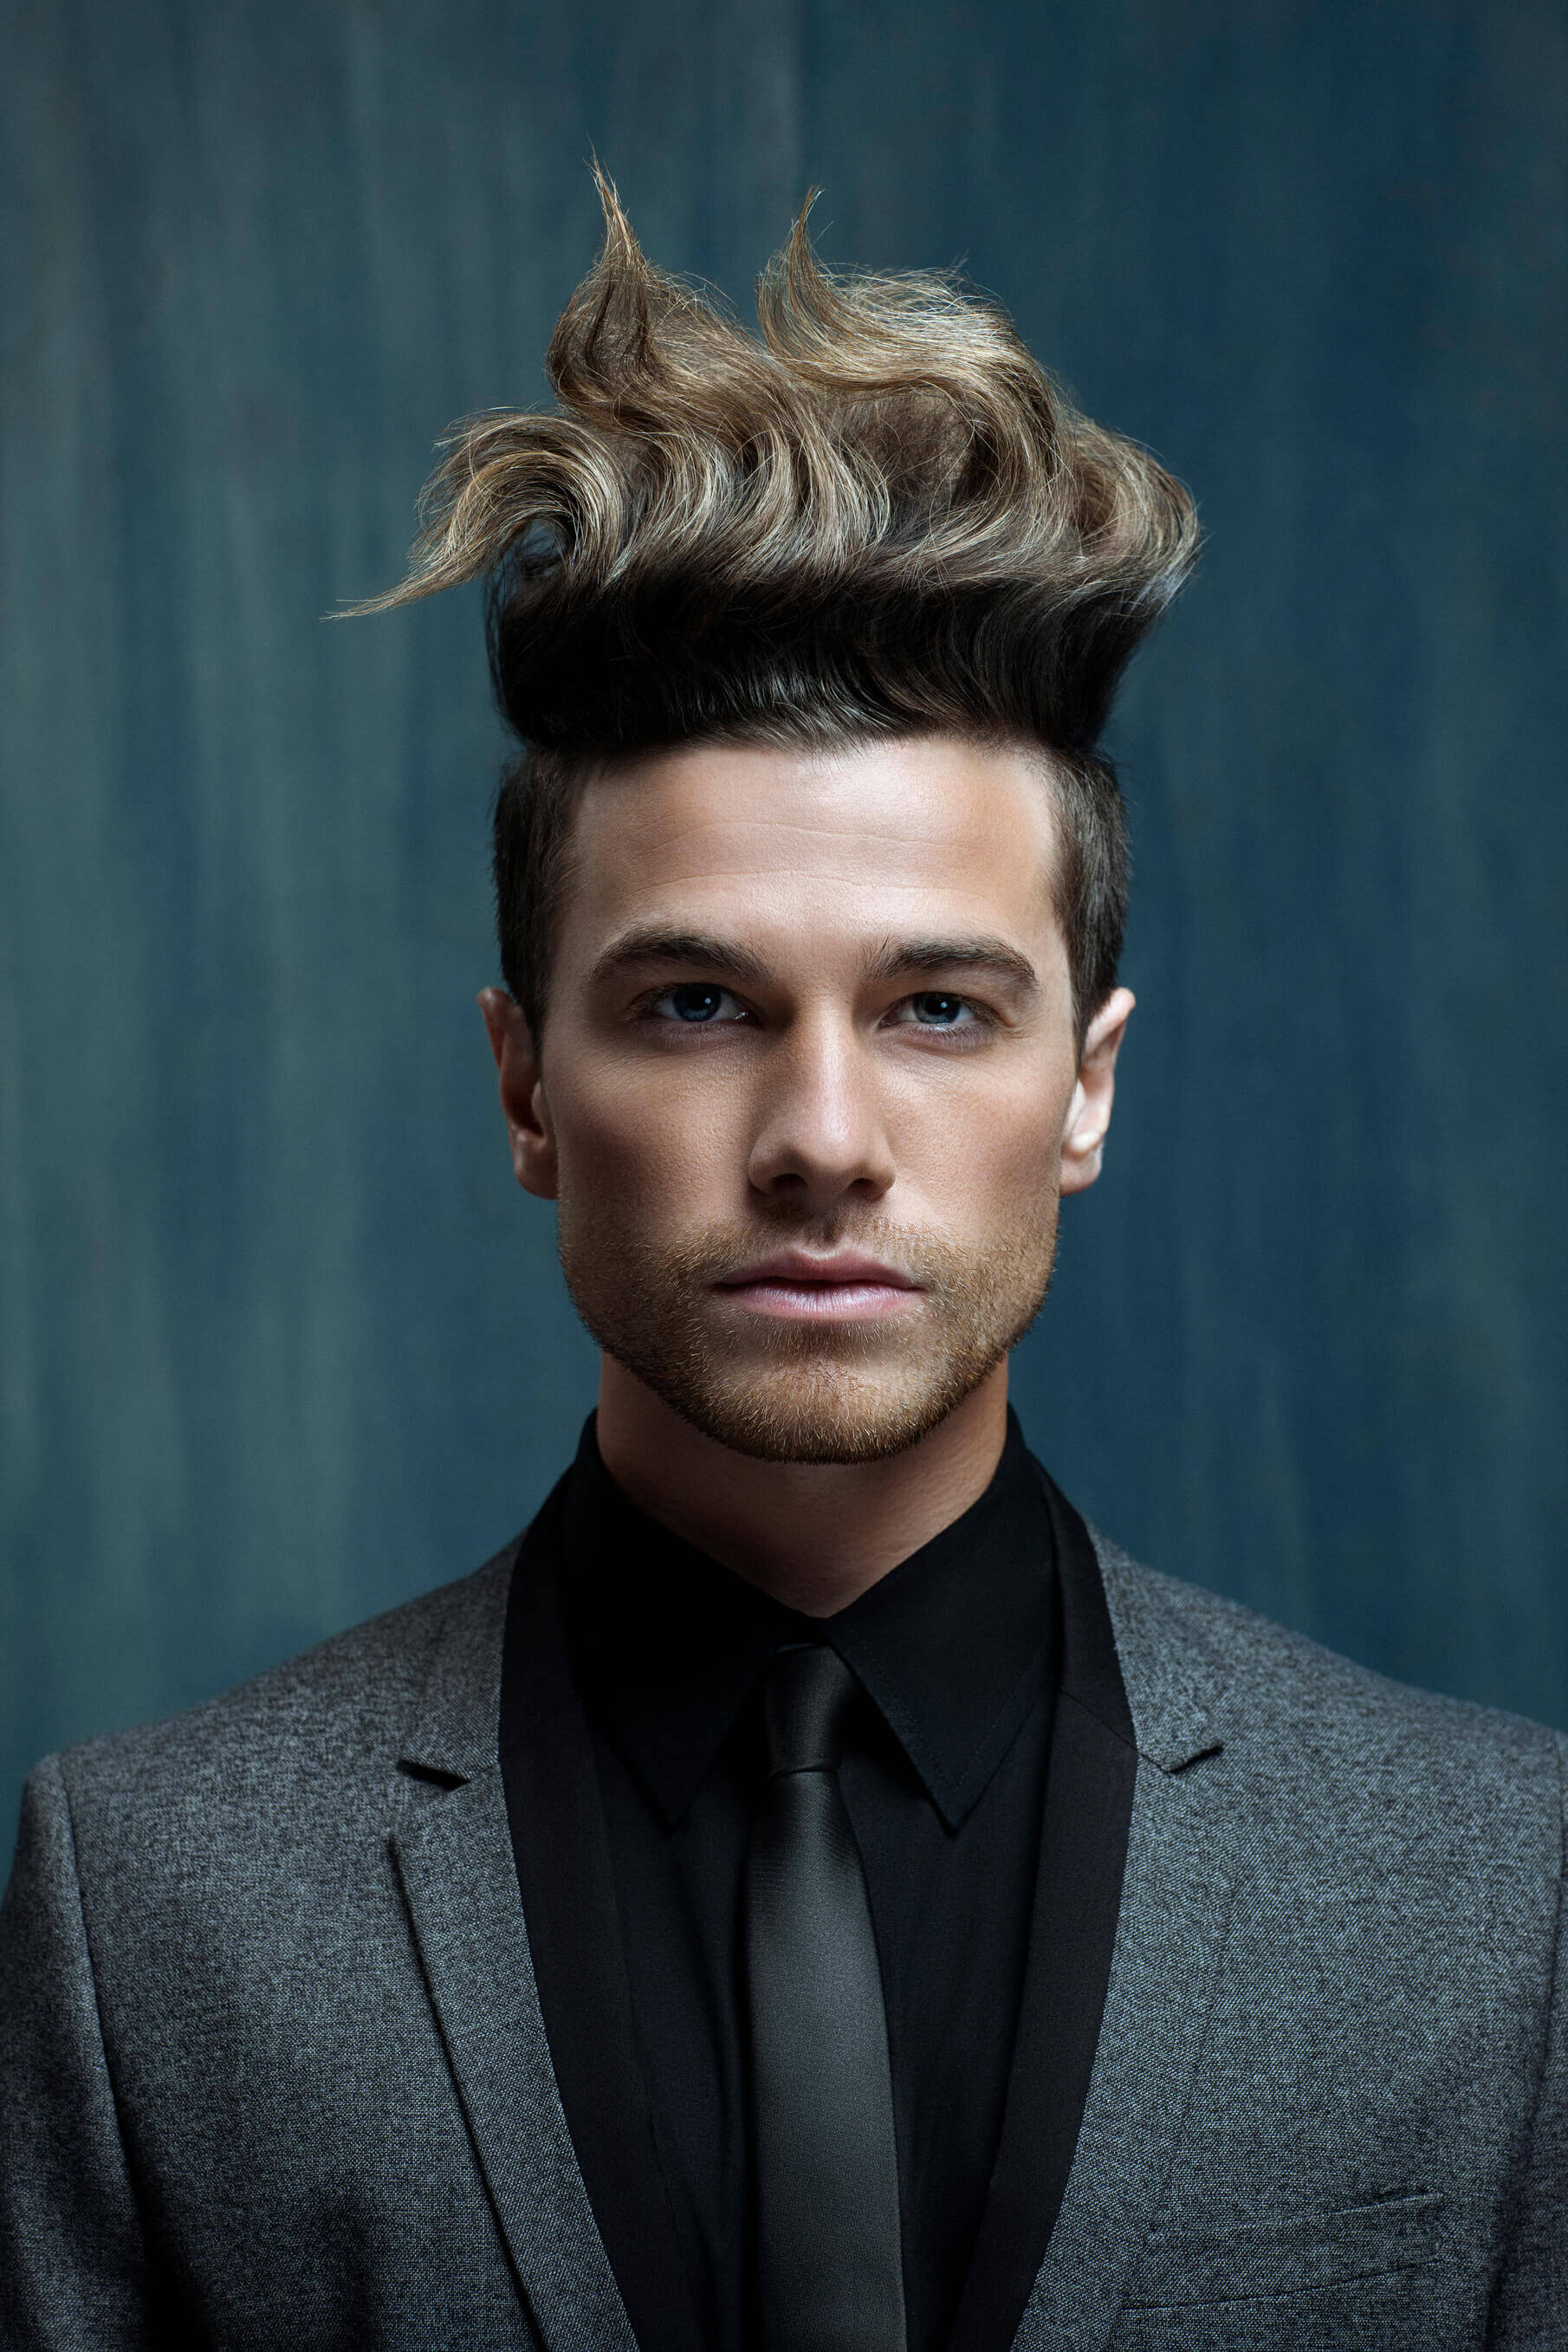 20 Best Quiff Haircuts to Try Right Now - EZHairstyle